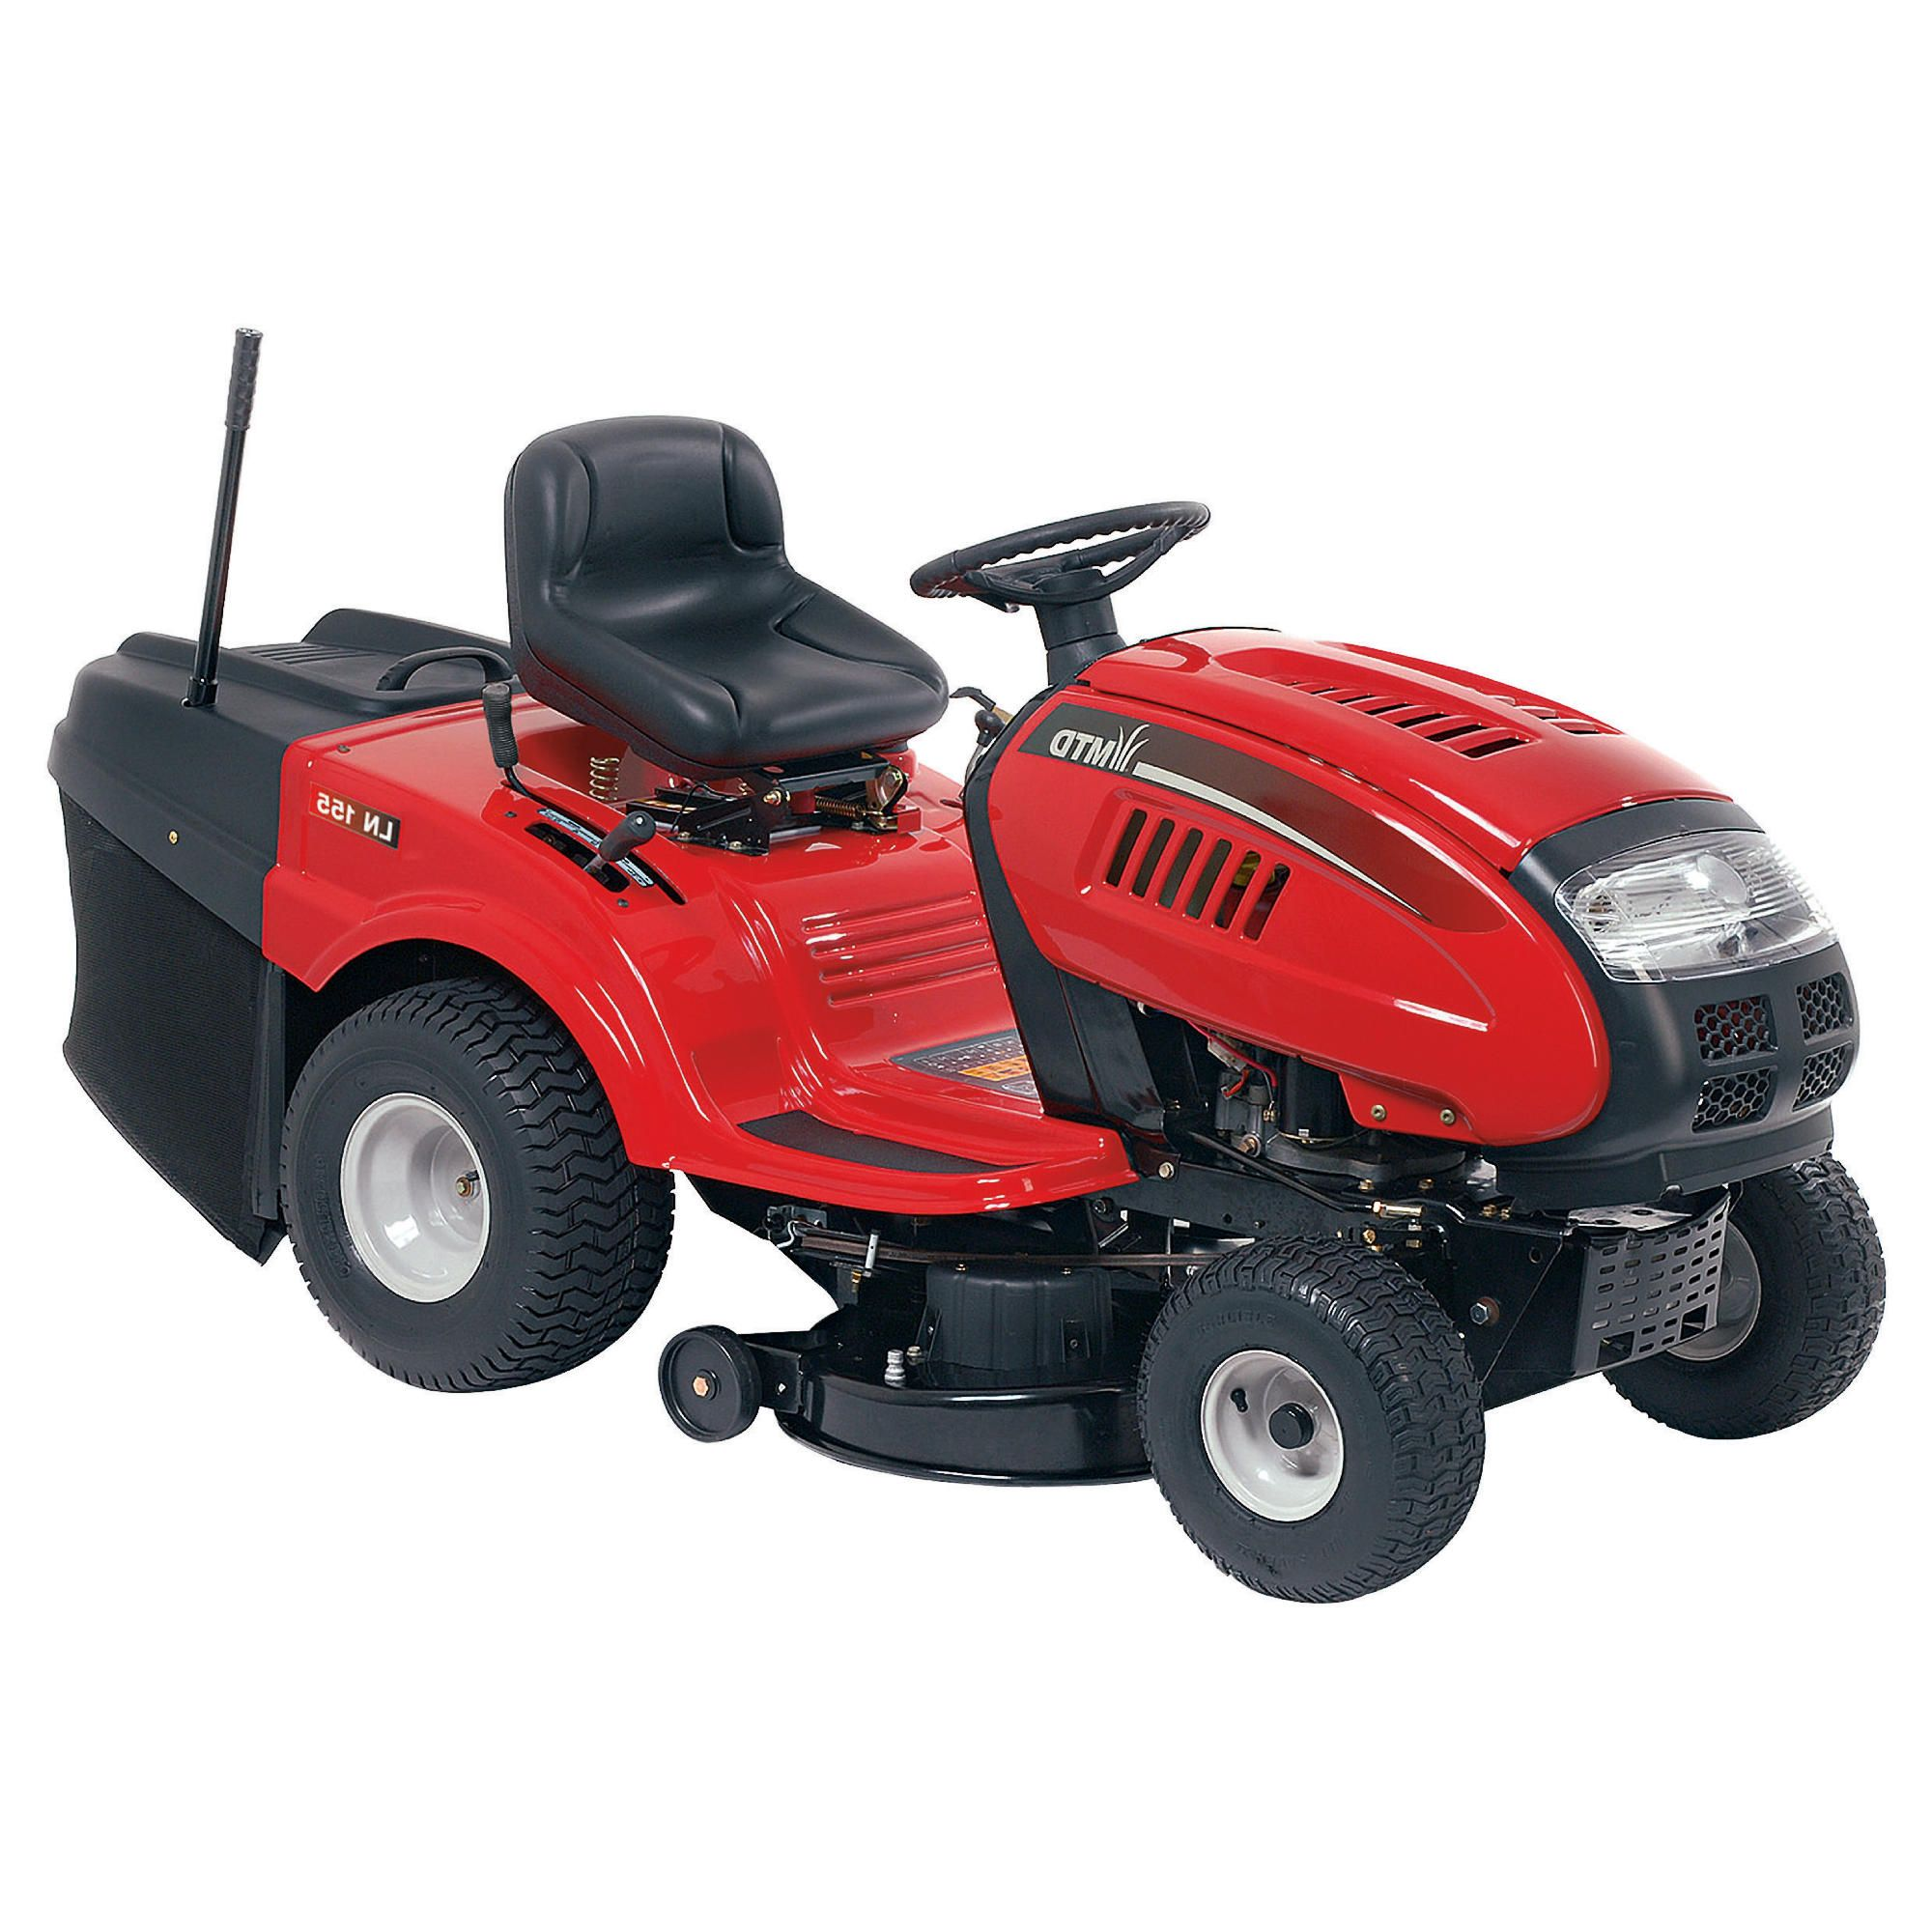 MTD 15.5hp Rear Discharge Lawn Tractor LN155 at Tesco Direct